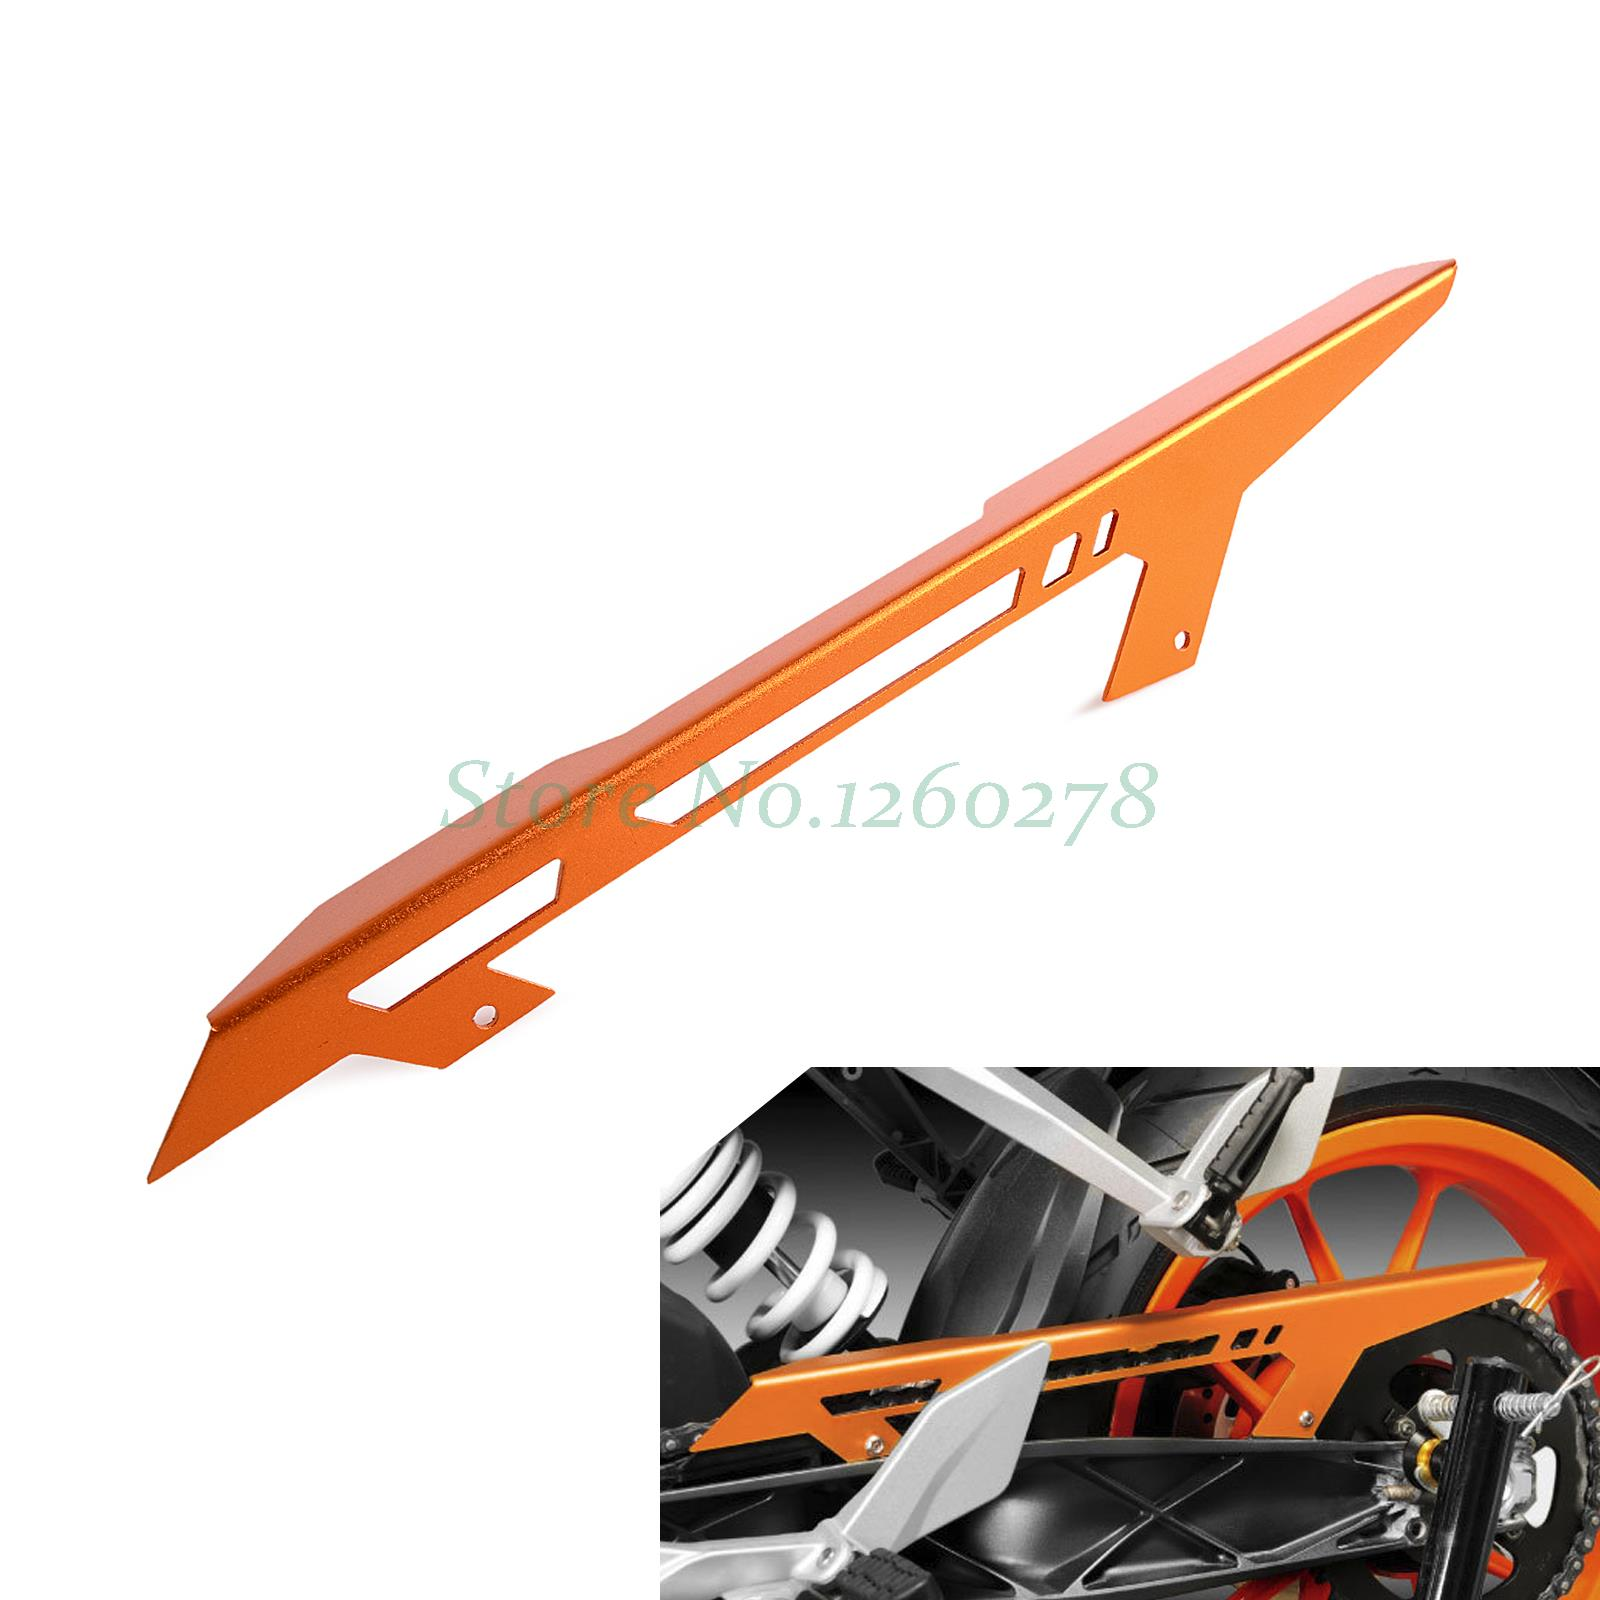 Motorcycle Anodized Chain Guard Cover For KTM 125 200 390 Duke 2011 2012 2013 2014 2015